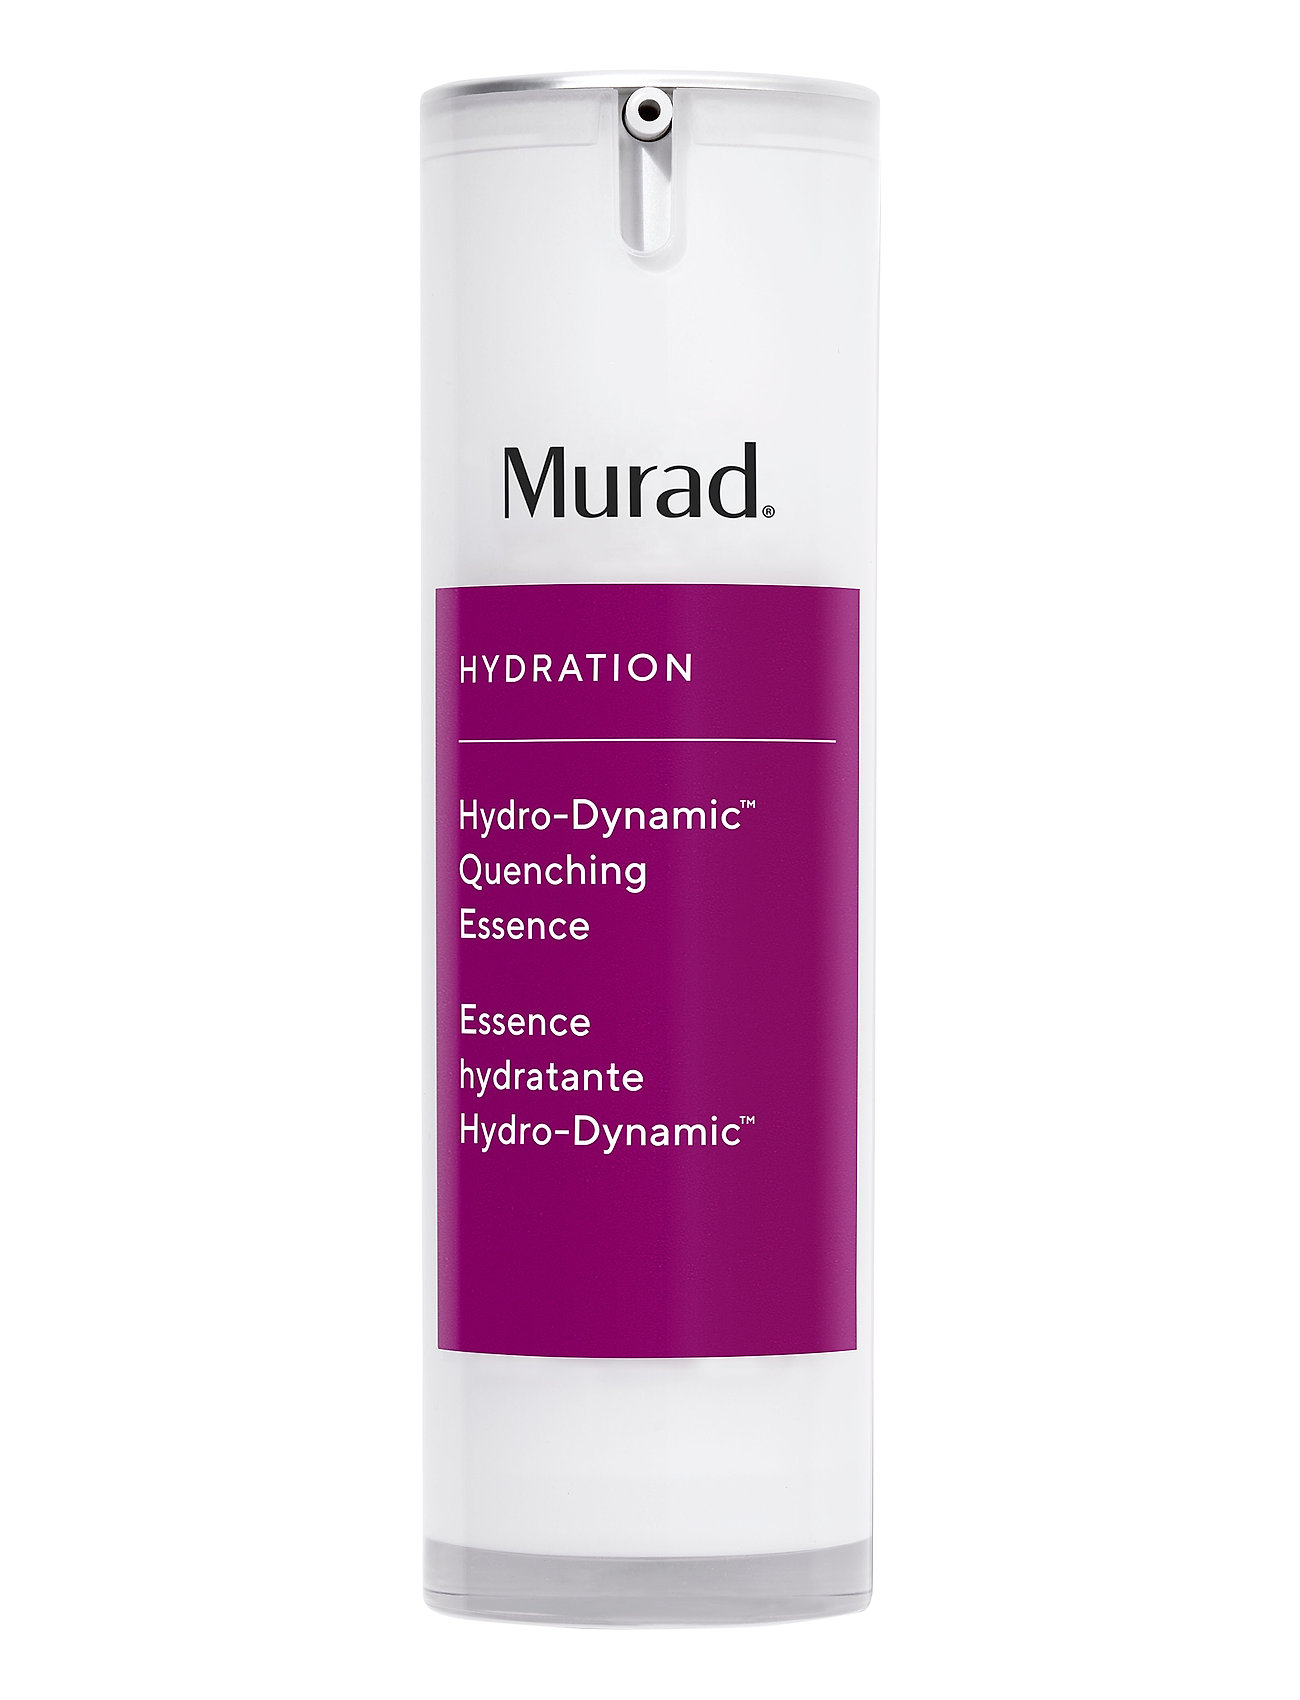 Murad Hydration Hydro-Dynamic Quenching Essence - NO COLOUR